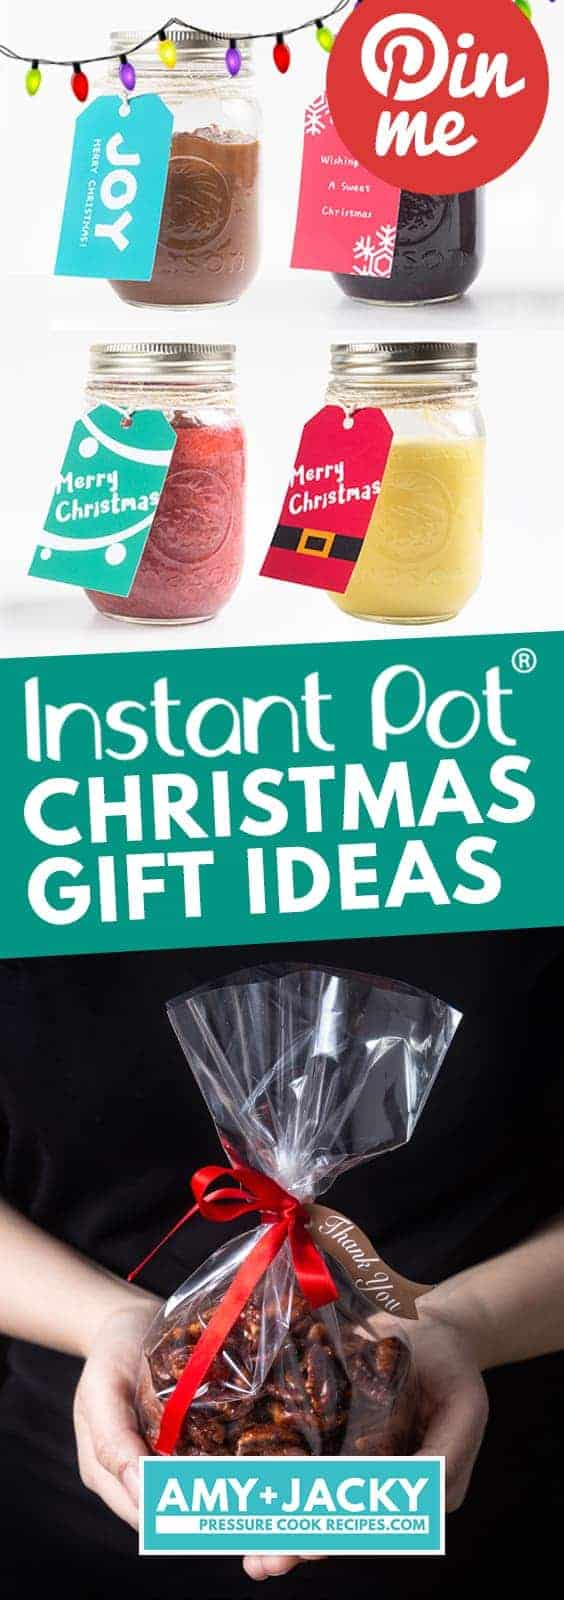 Christmas Homemade Gifts 21 Impressive Instant Pot Food Gifts You Can Make Amy Jacky